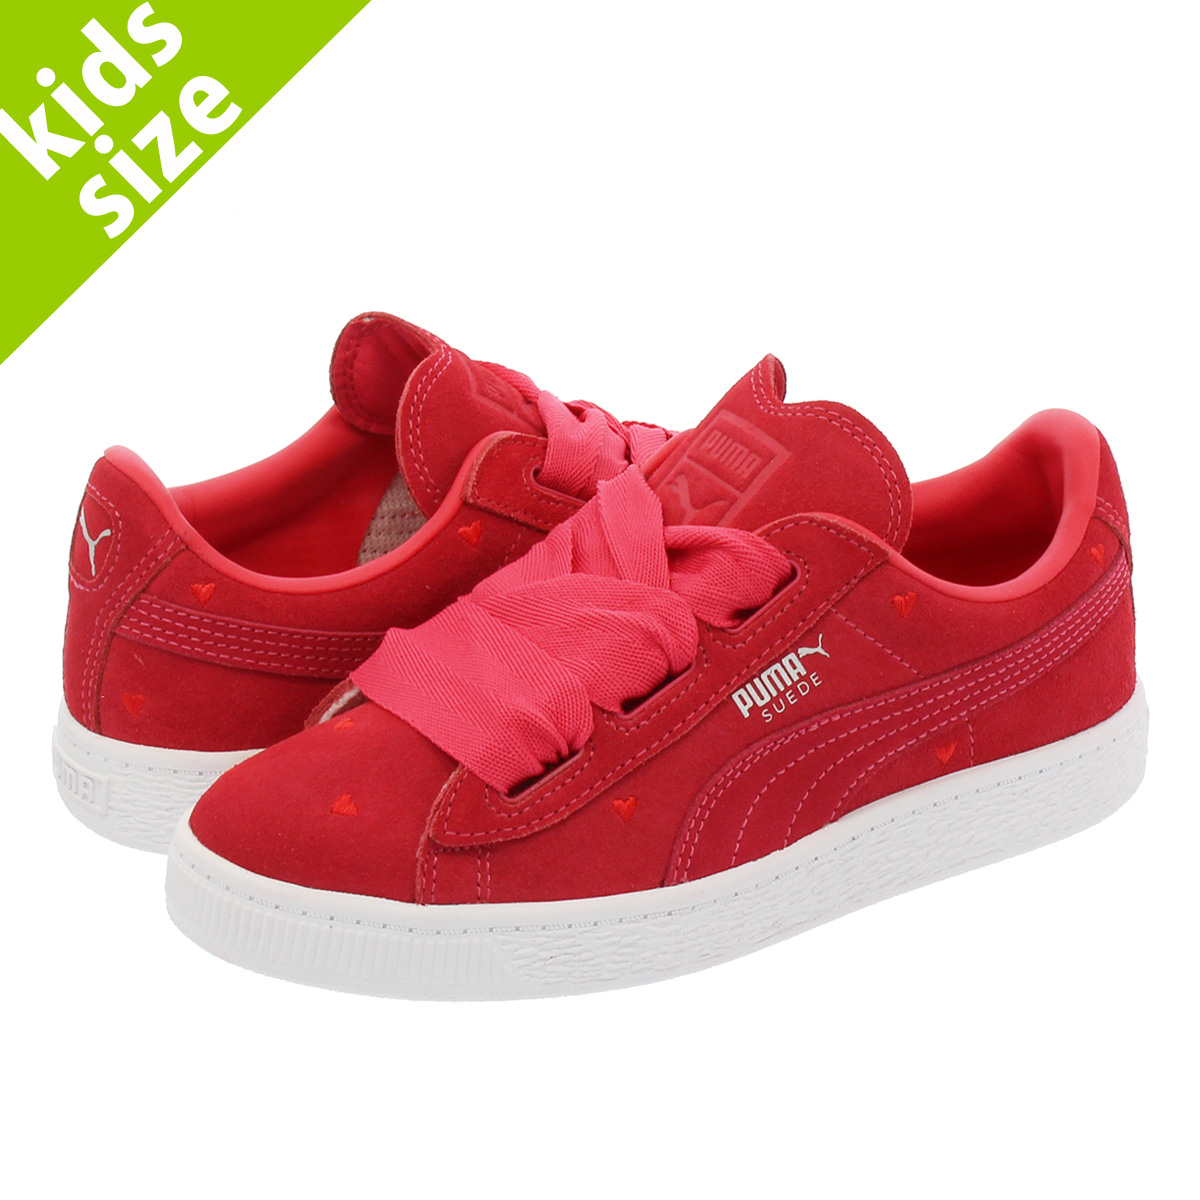 on sale ccb16 c7730 PUMA SUEDE HEART VALENTINE PS Puma suede cloth heart Valentine PS PARADISE  PINK/PARADISE PINK 365,136-01